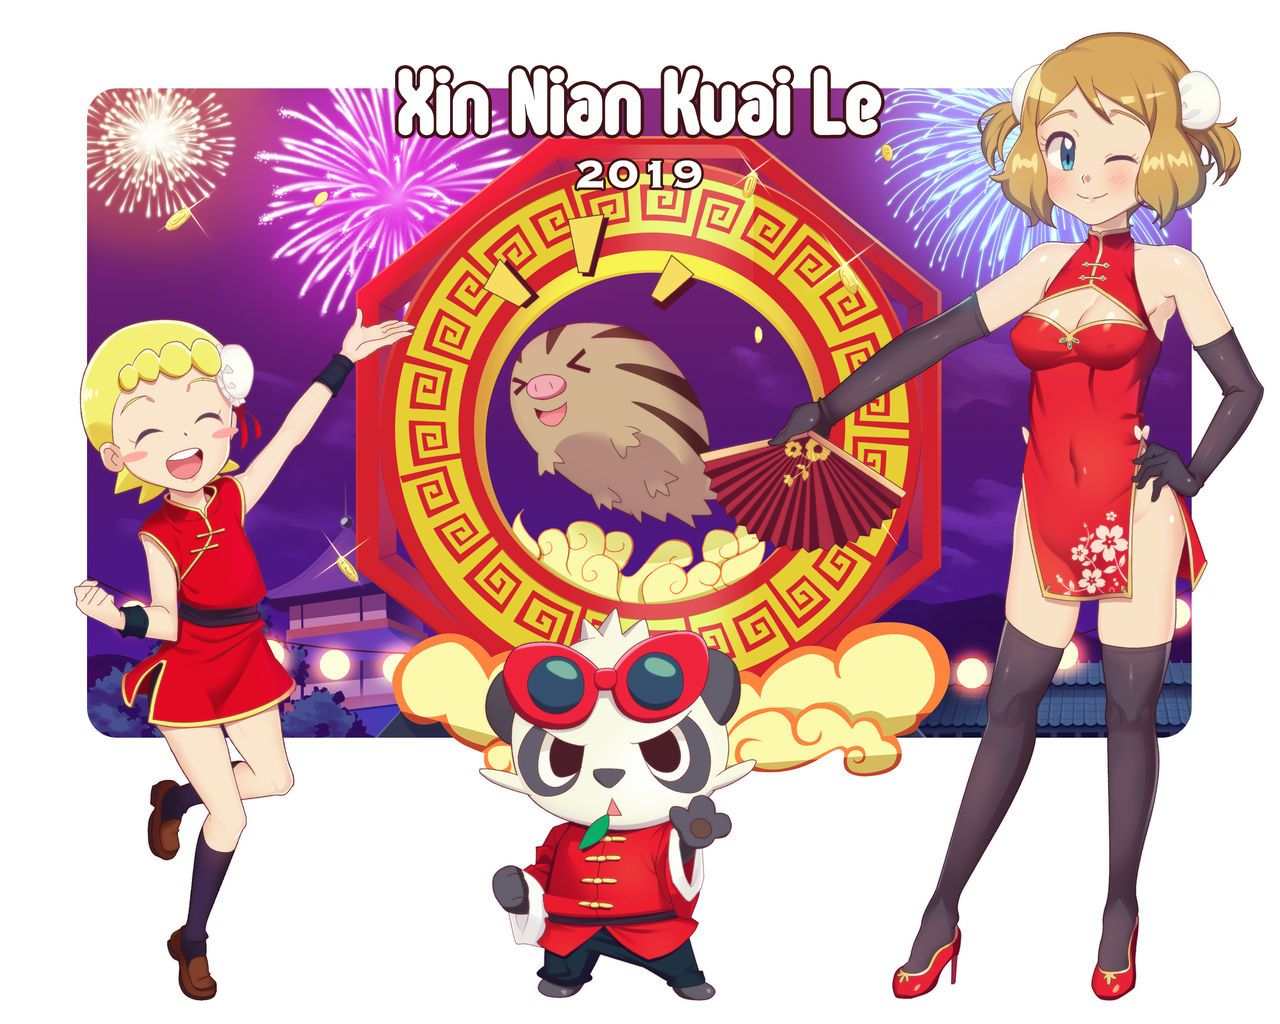 Chinese New Year 2019 by DaDonYordel on DeviantArt